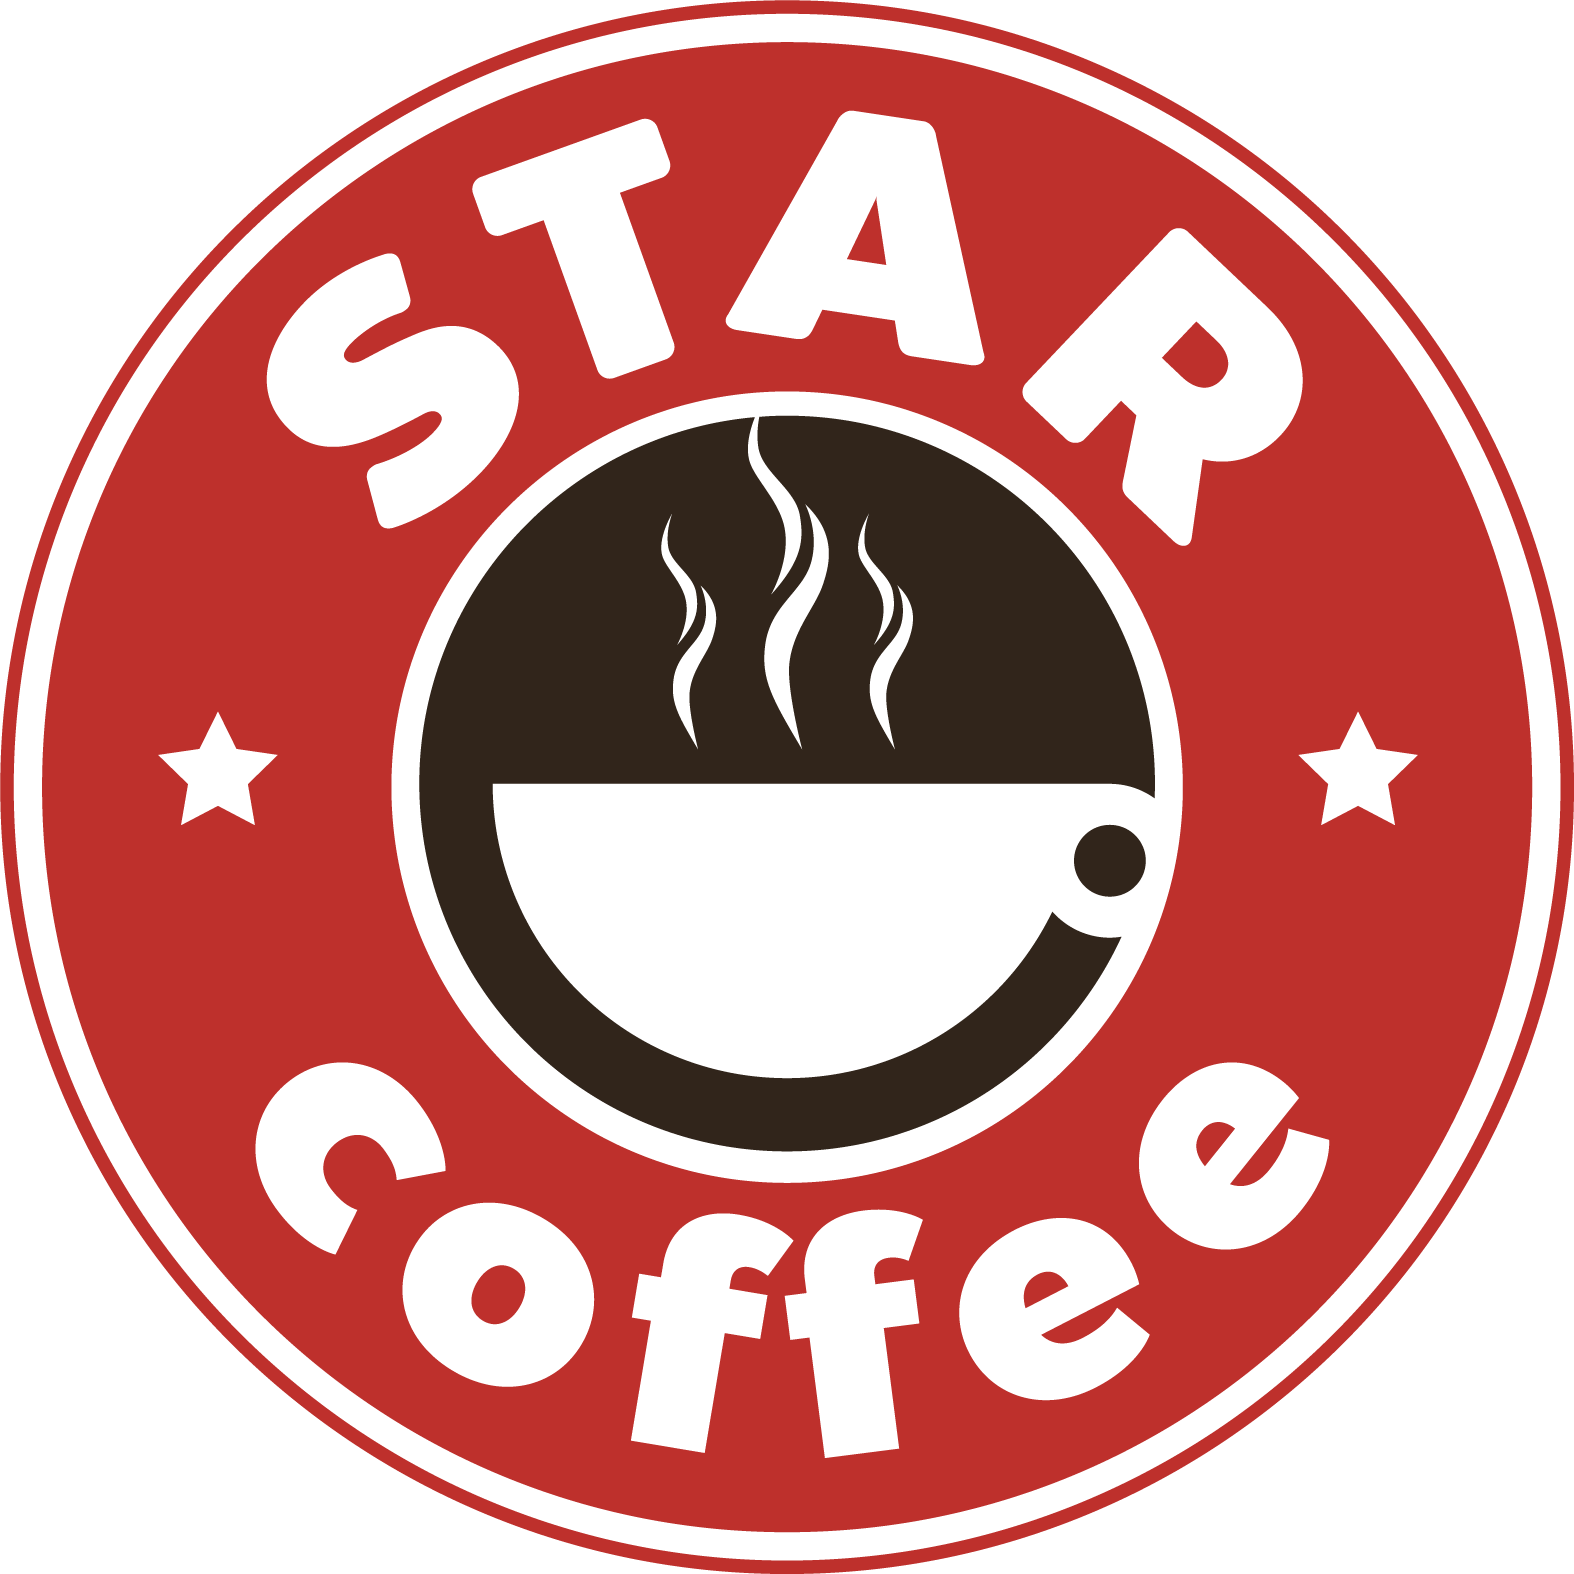 star-coffee-logo